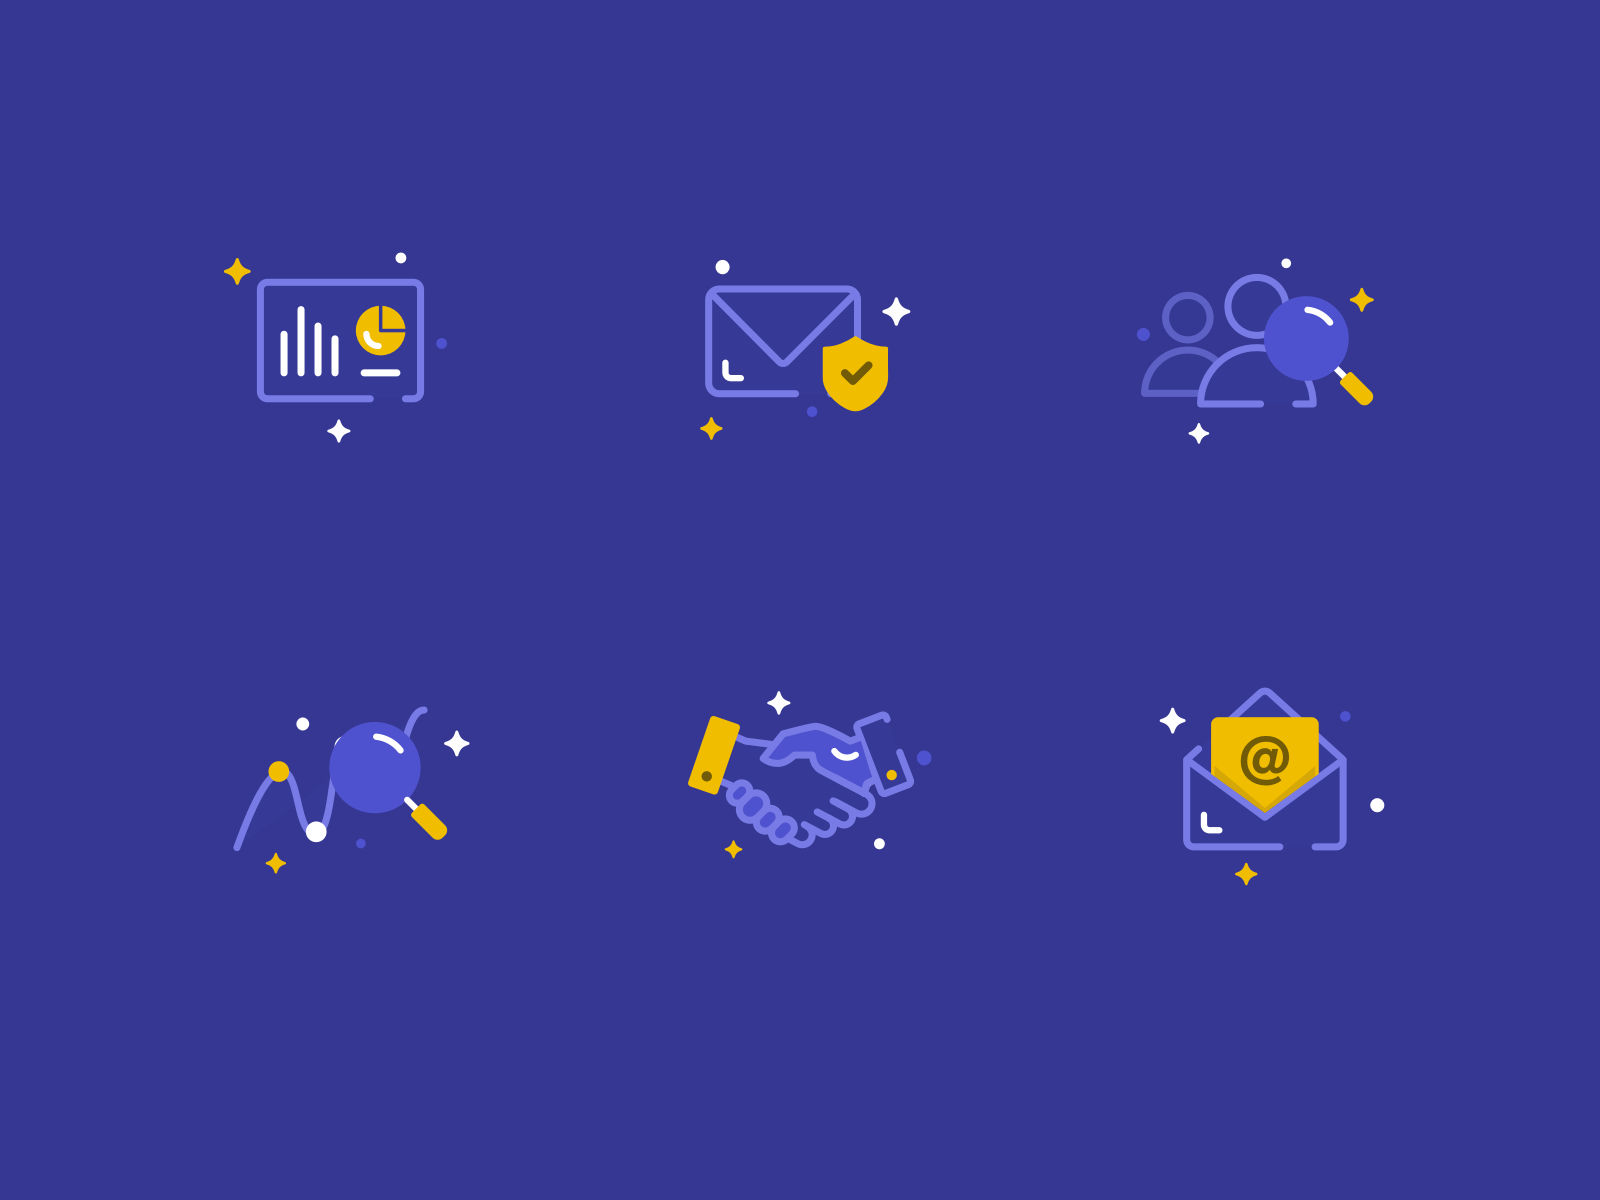 Icons For Website Landing Page In 2020 With Images Website Icons Landing Page Icon